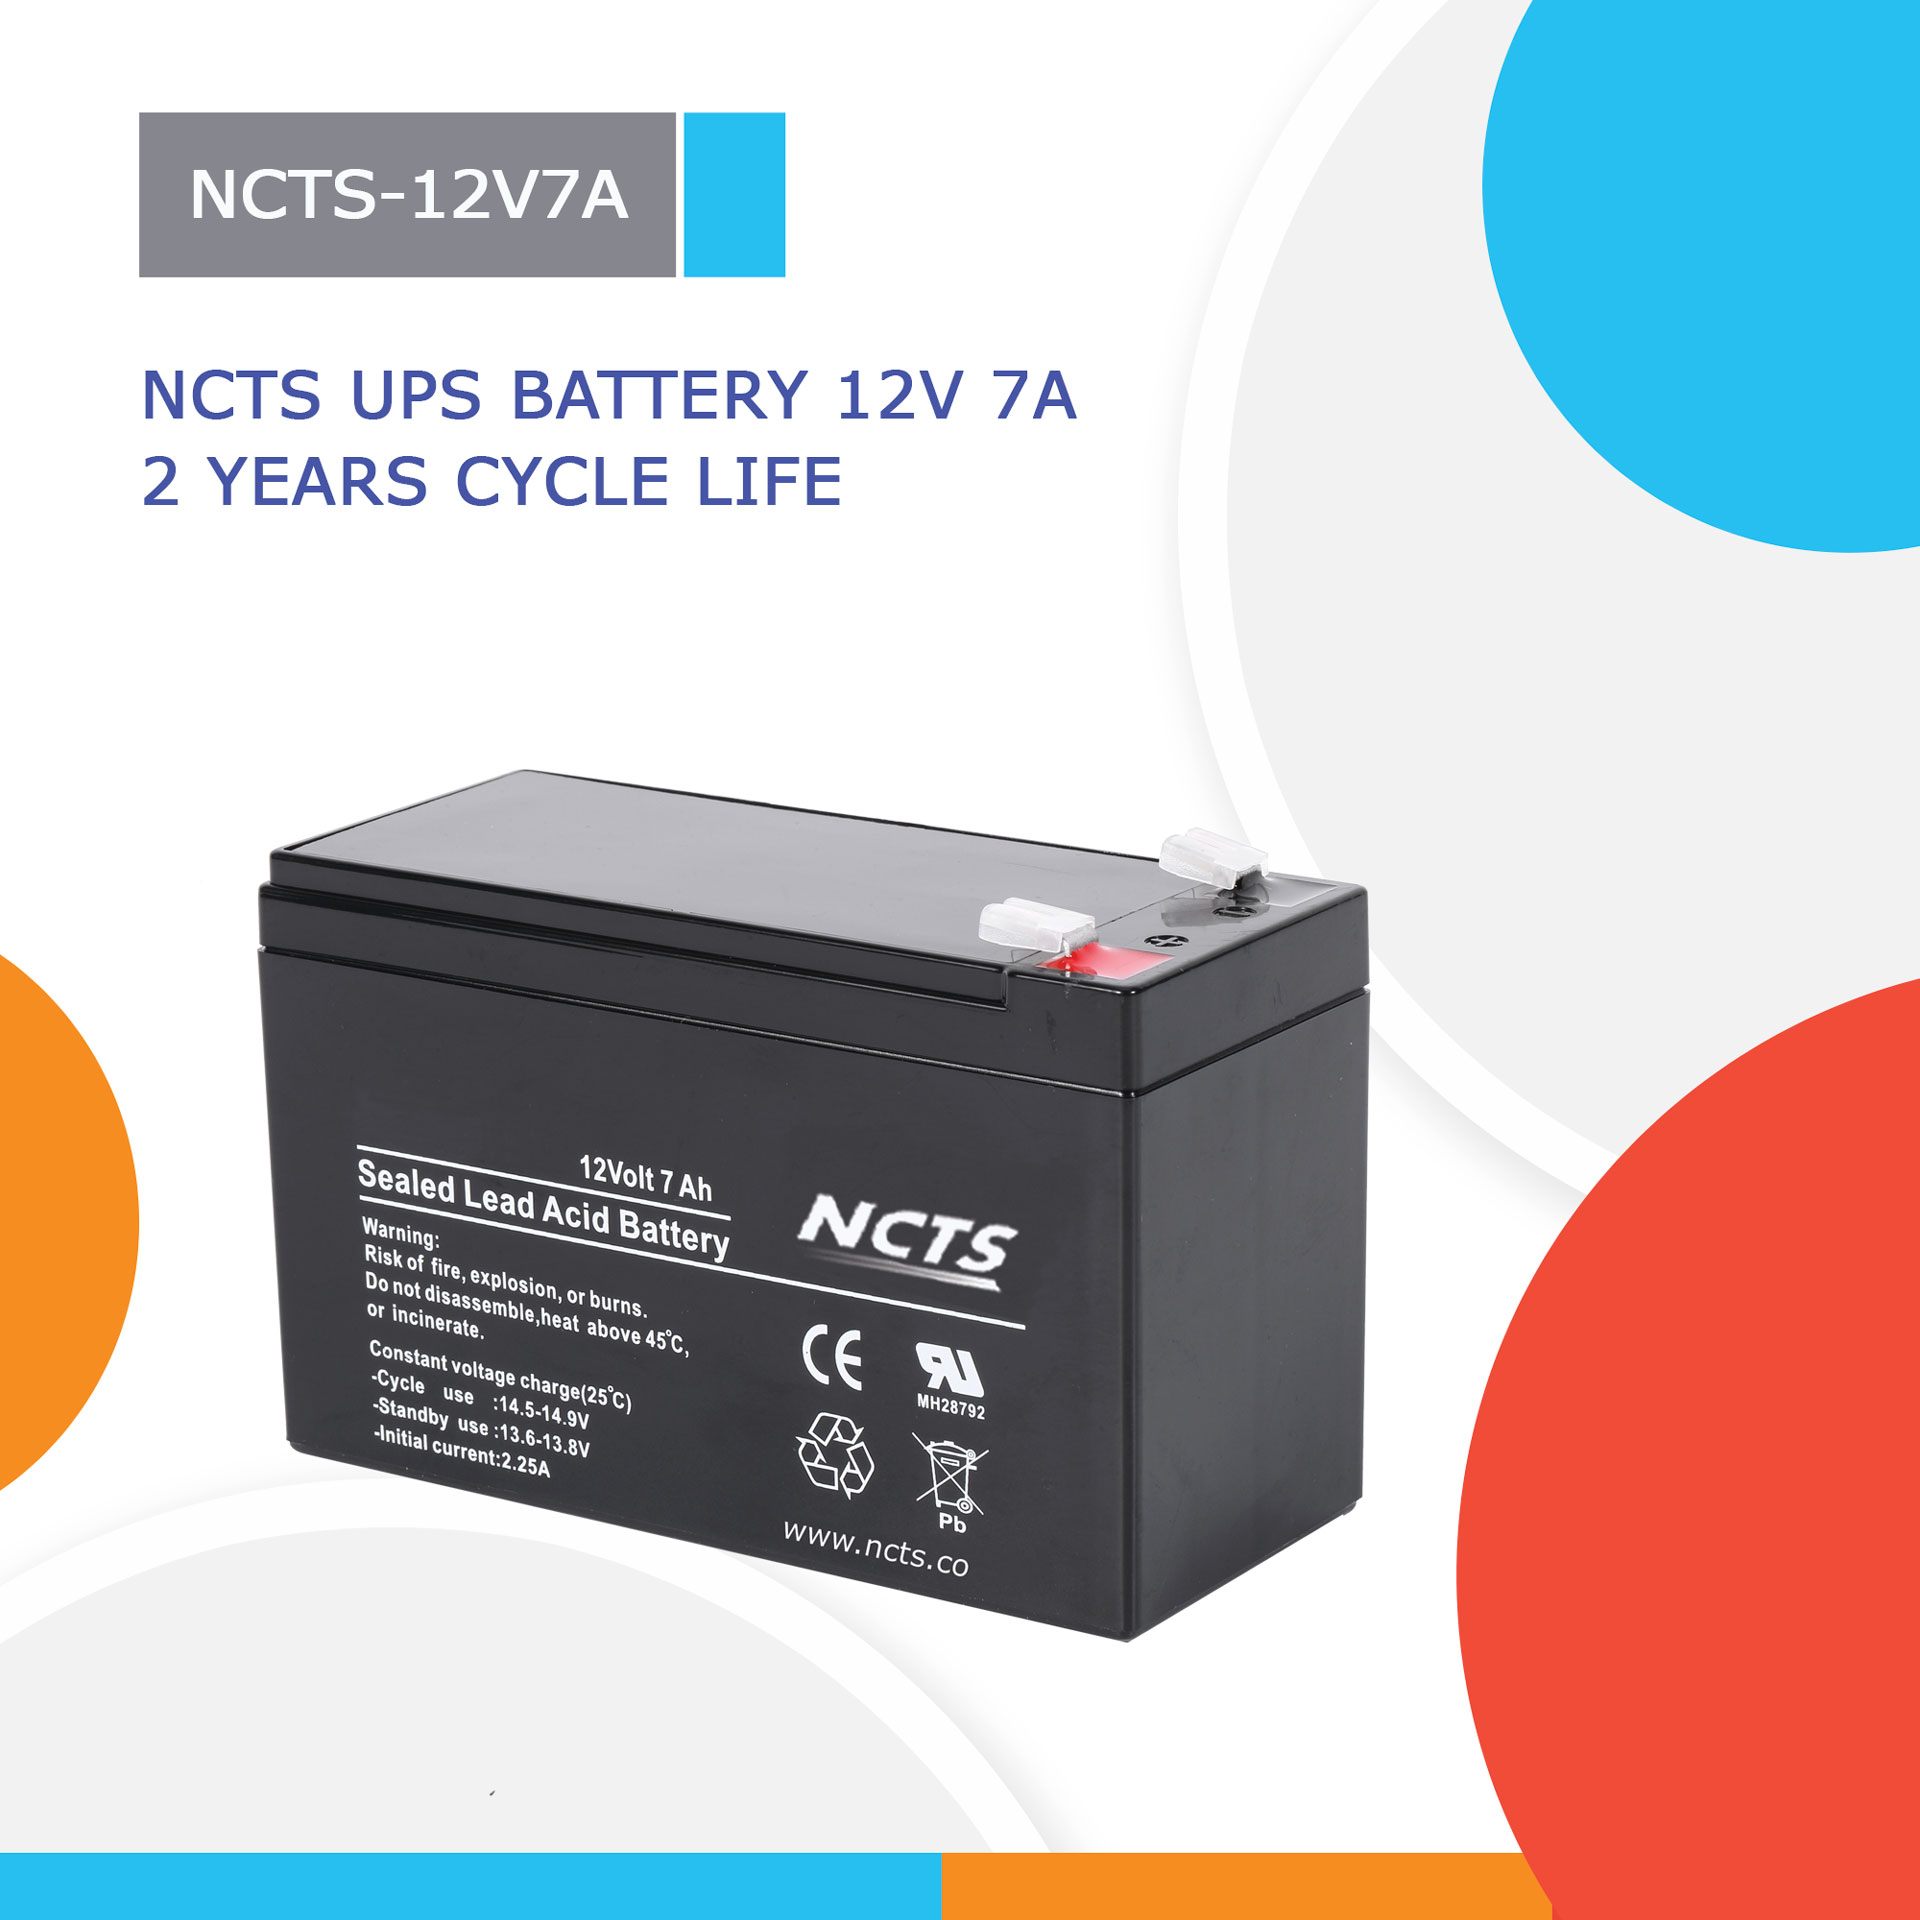 NCTS 12V 7A UPS BATTERY